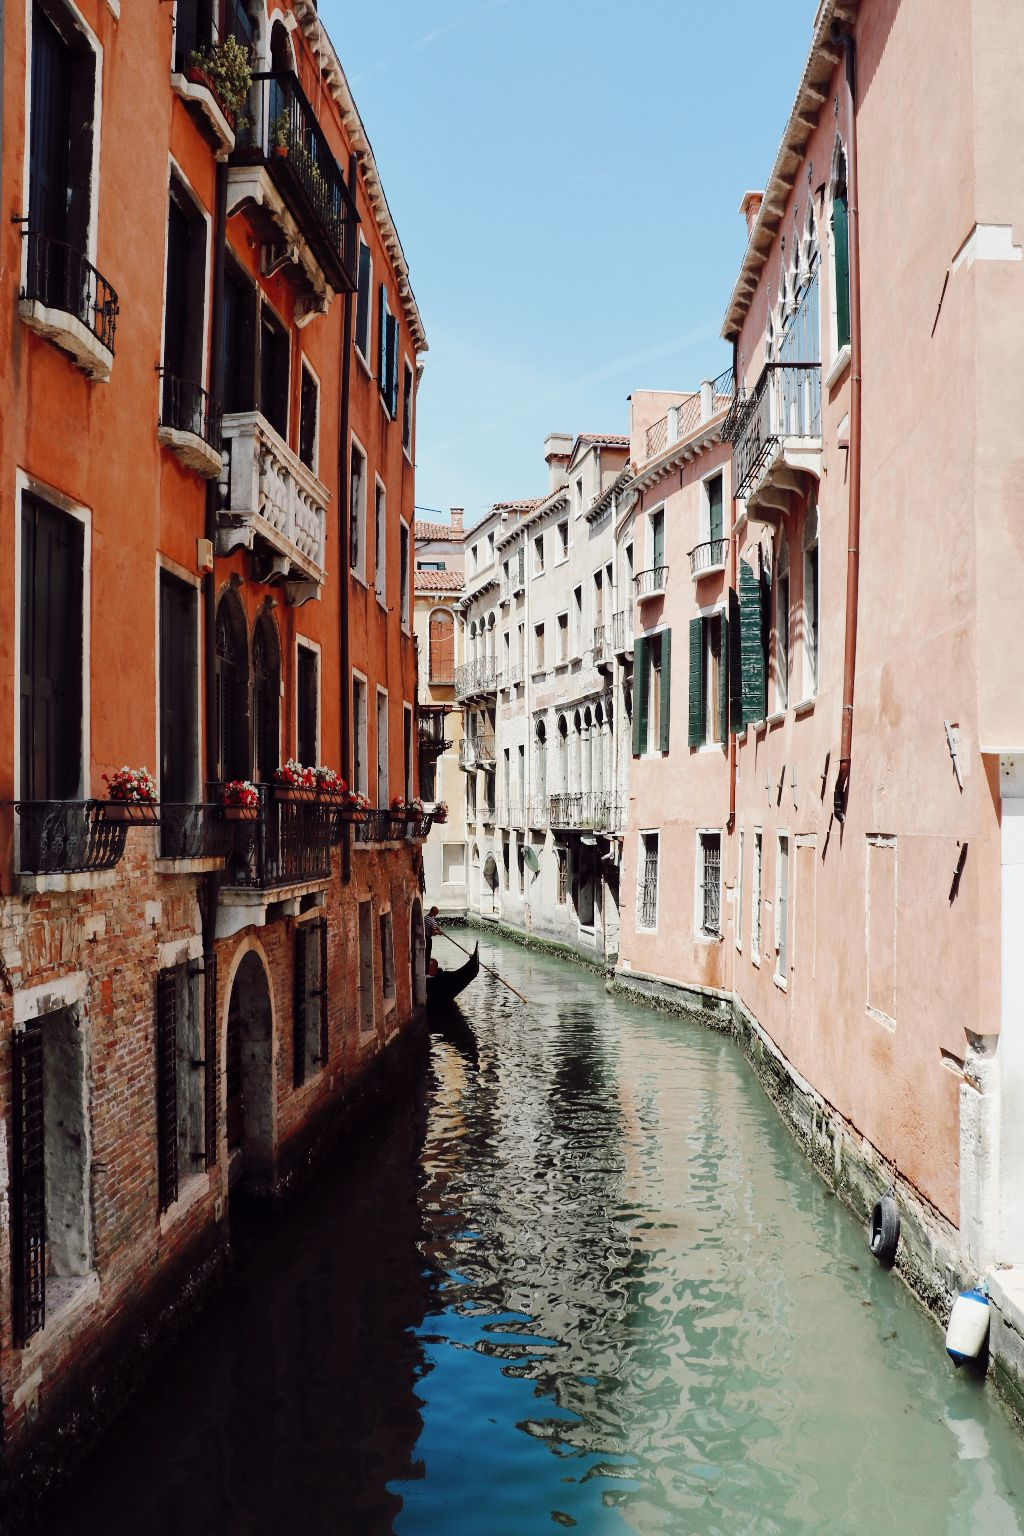 #venice #canal #canals #water #river #boat #house #urban #houses #buildings #window #reflections #sky #blue #green #red #city #village #freetoedit #remixit